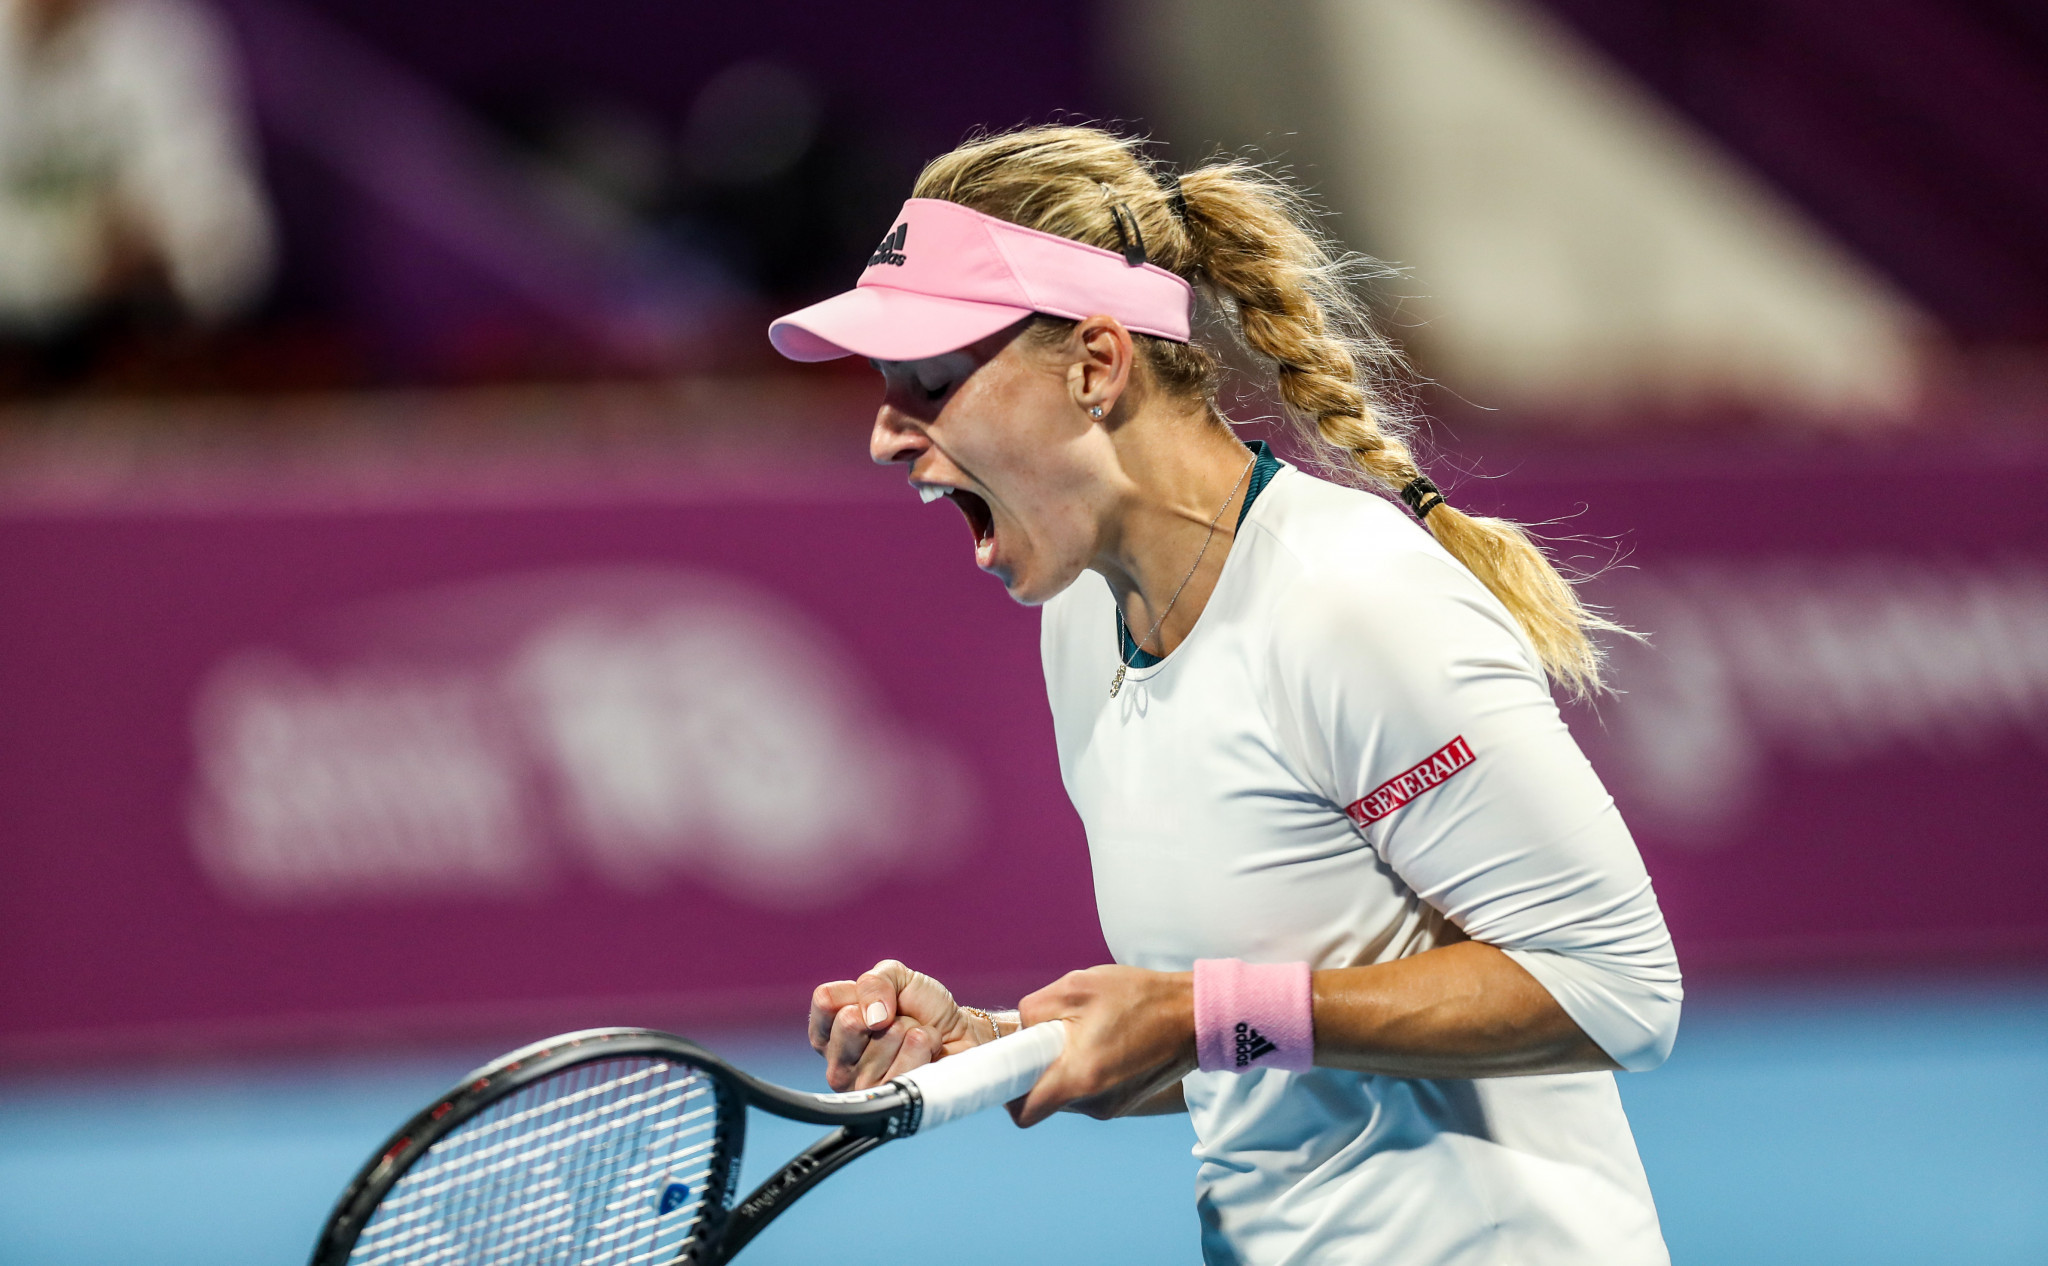 Germany's Angelique Kerber celebrates defeating Barbora Strýcová of the Czech Republic in the quarter-final of the WTA Qatar Open ©Getty Images